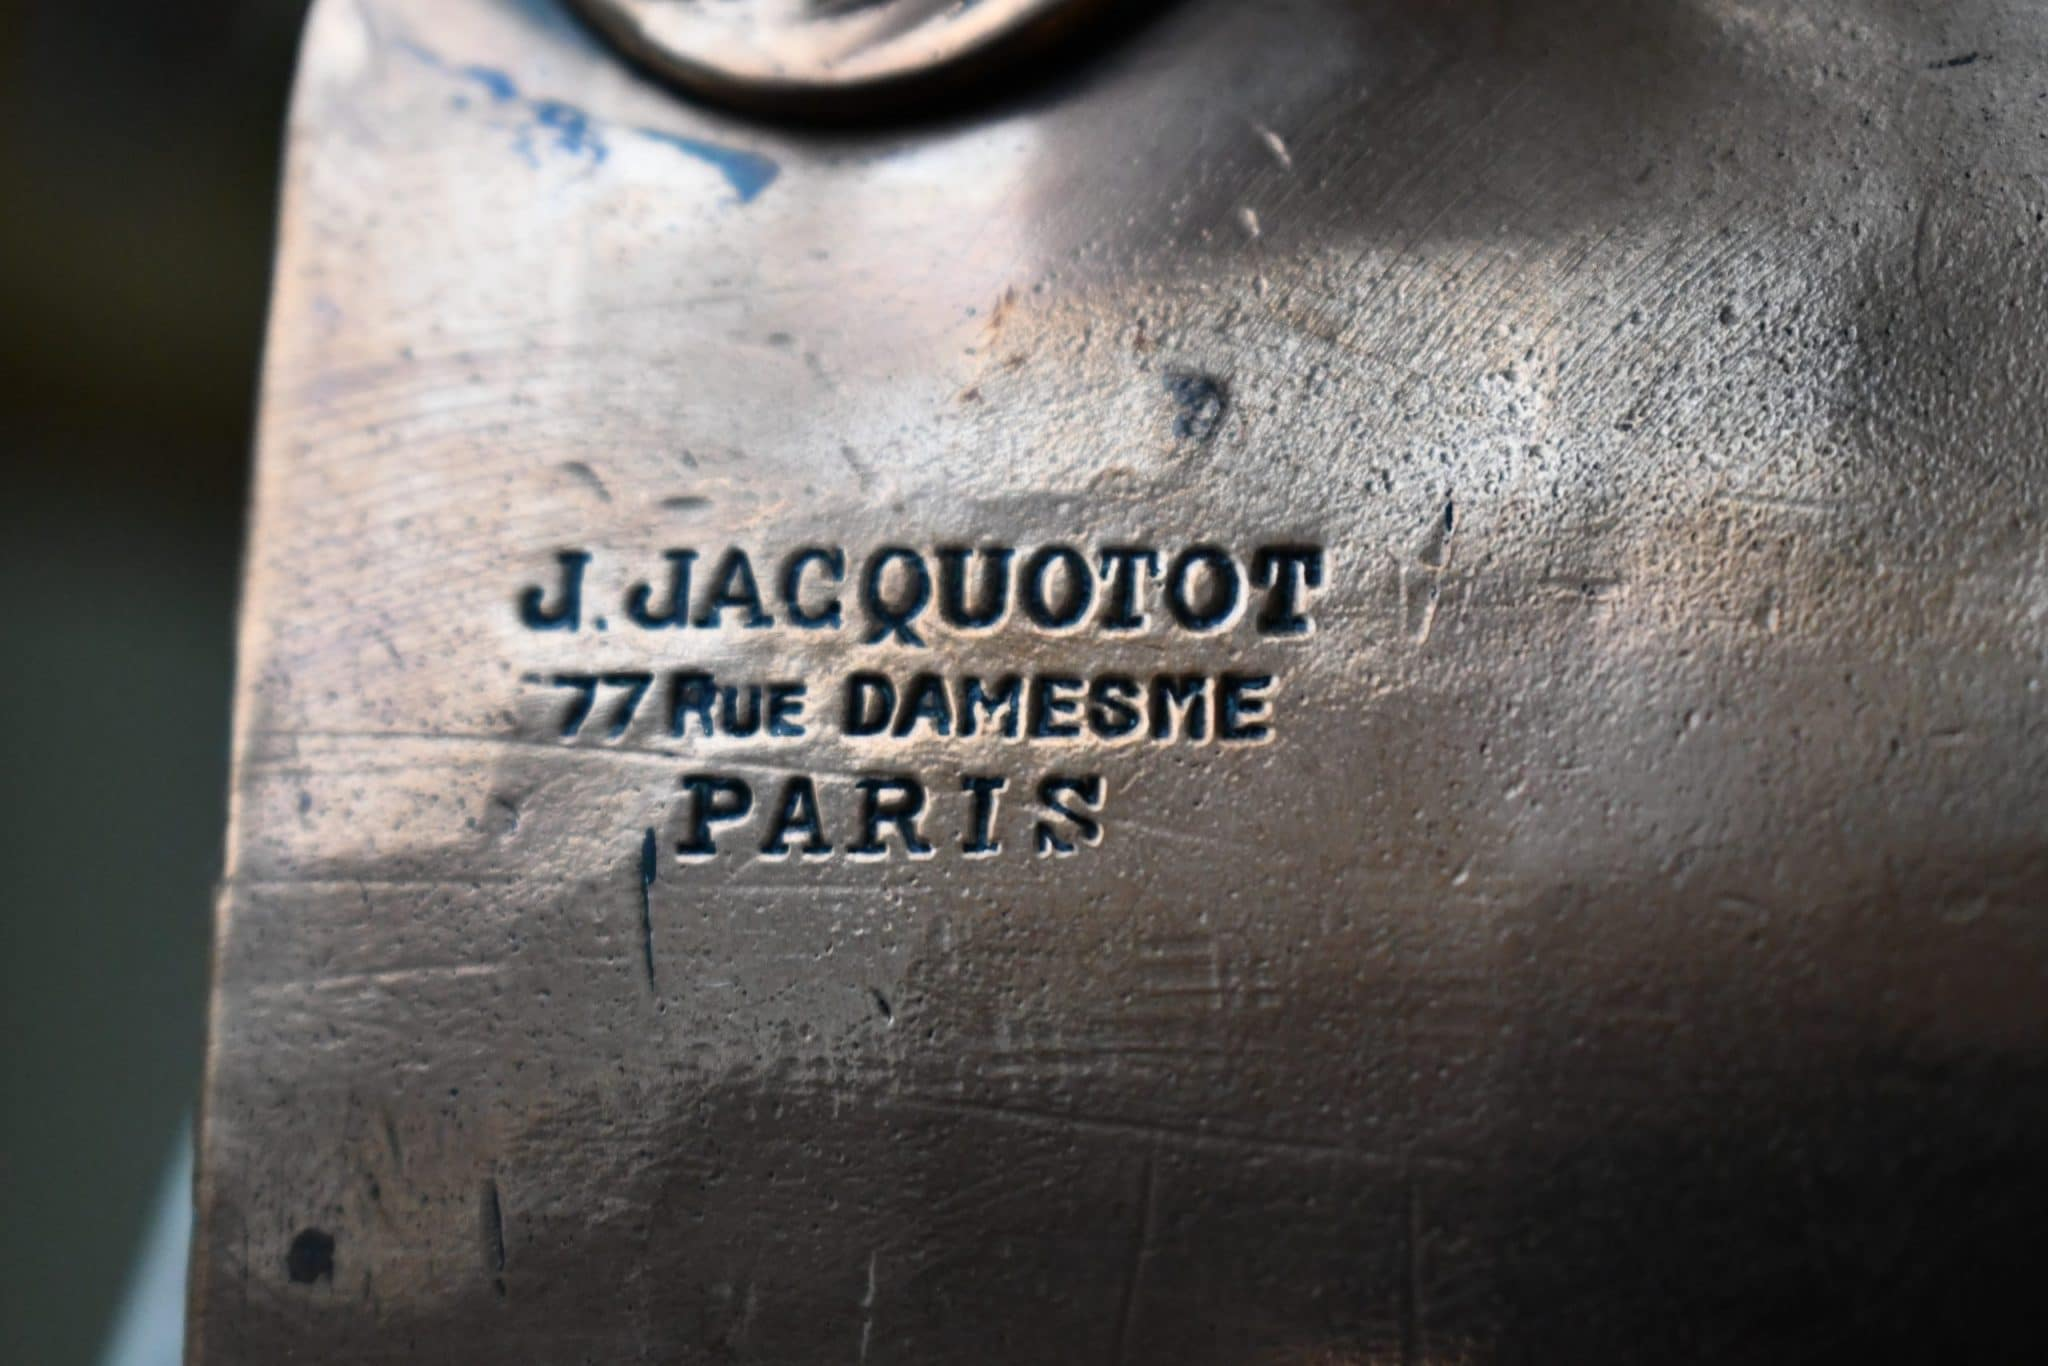 Field guide to Jacquotot